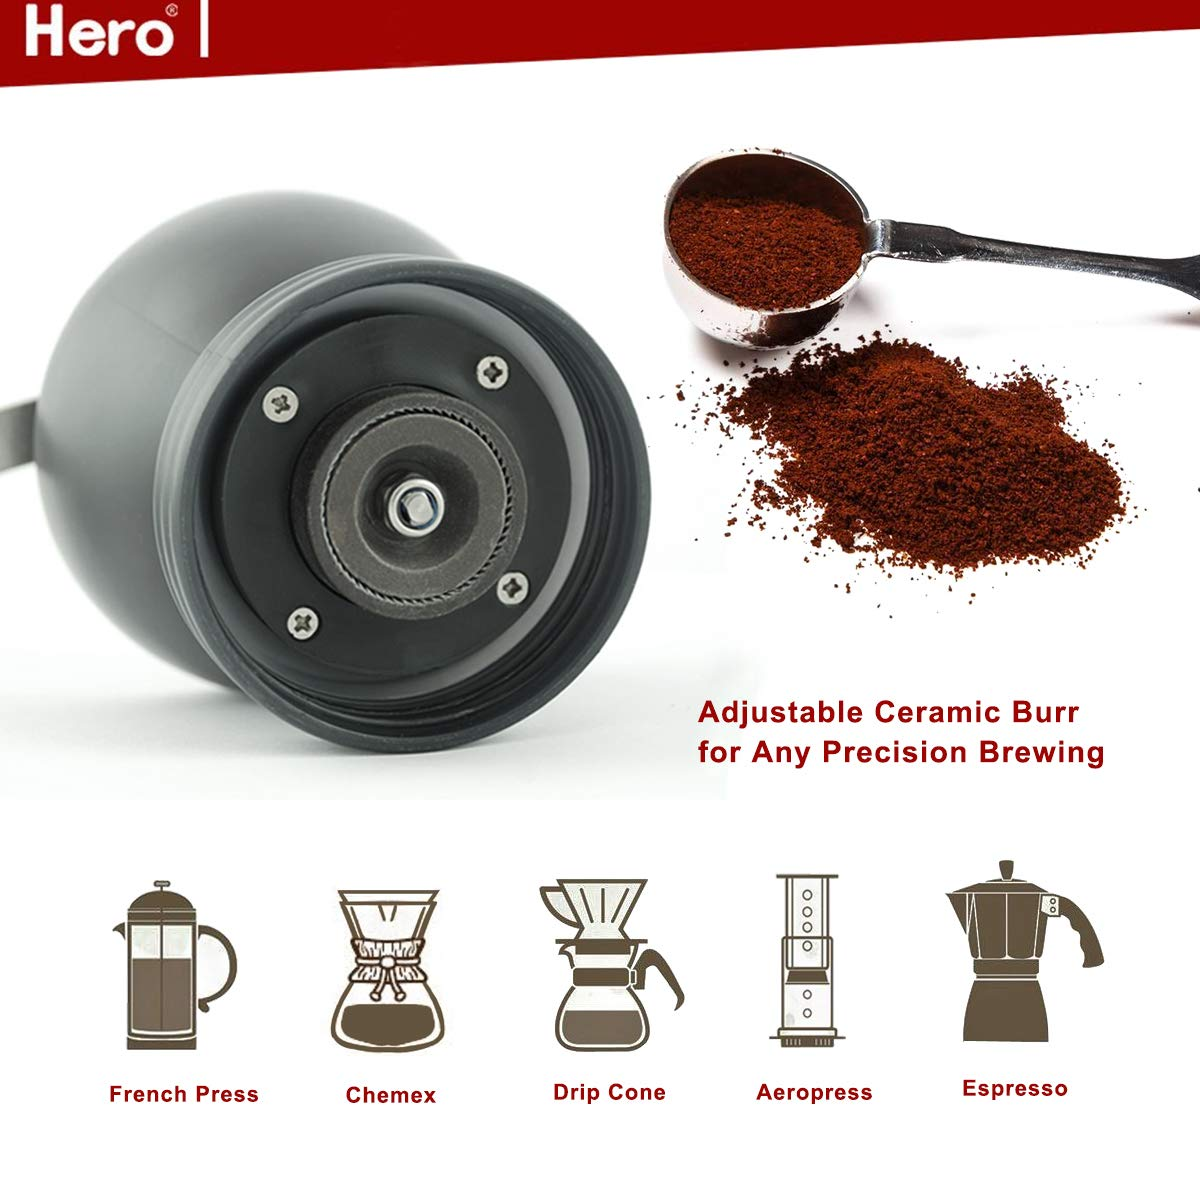 Hero Manual Coffee Grinder-Conical Ceramic Burr Mill,Adjustable Hand Precision Brewing, Black by Hero (Image #5)